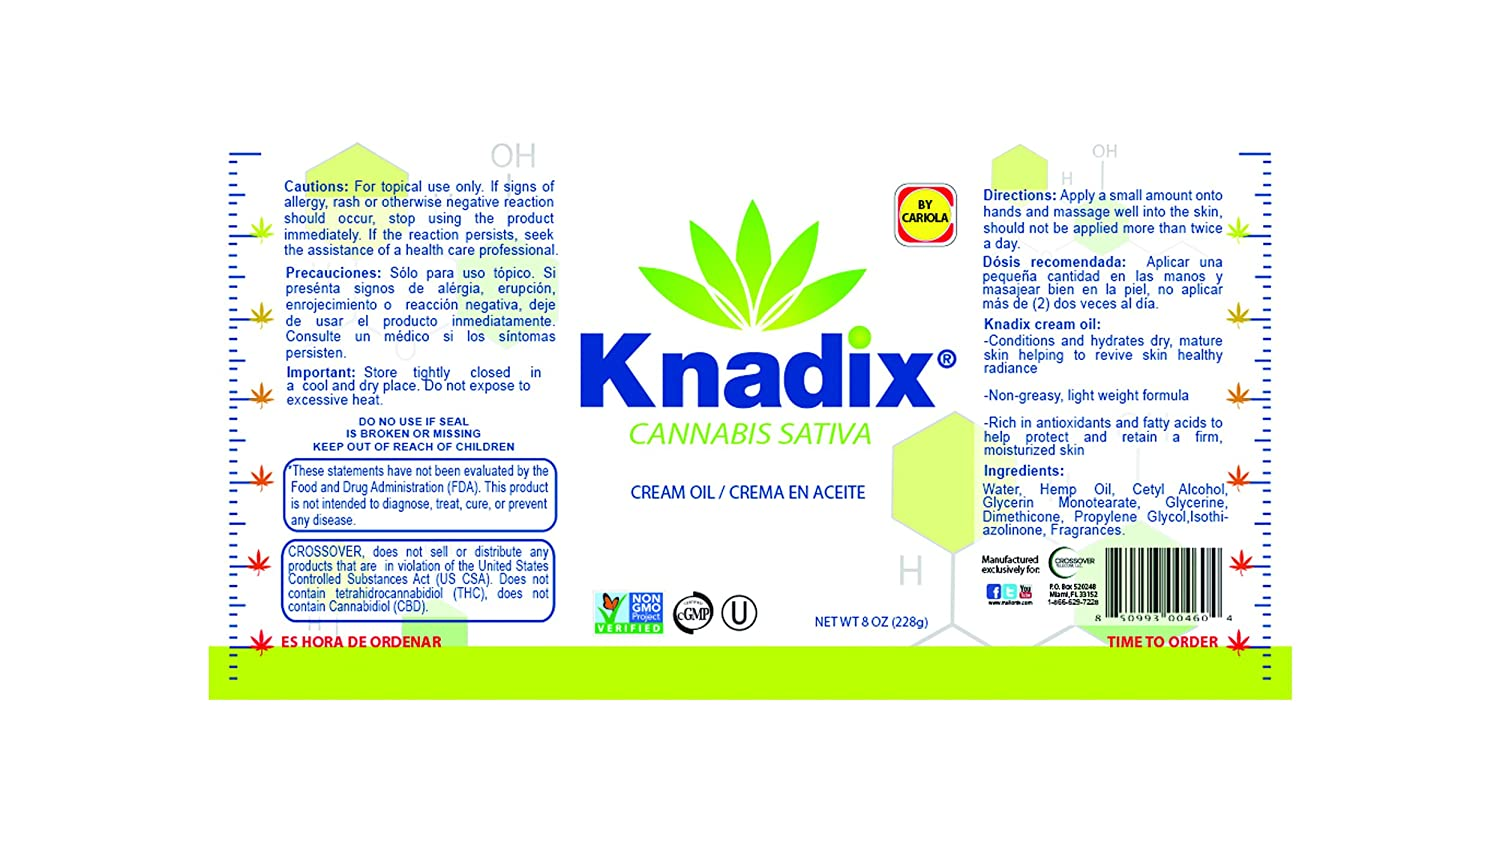 Amazon.com: Knadix Natural -Value Pack- (Hemp Oil Cream & Bottle of 30 capsules): Health & Personal Care